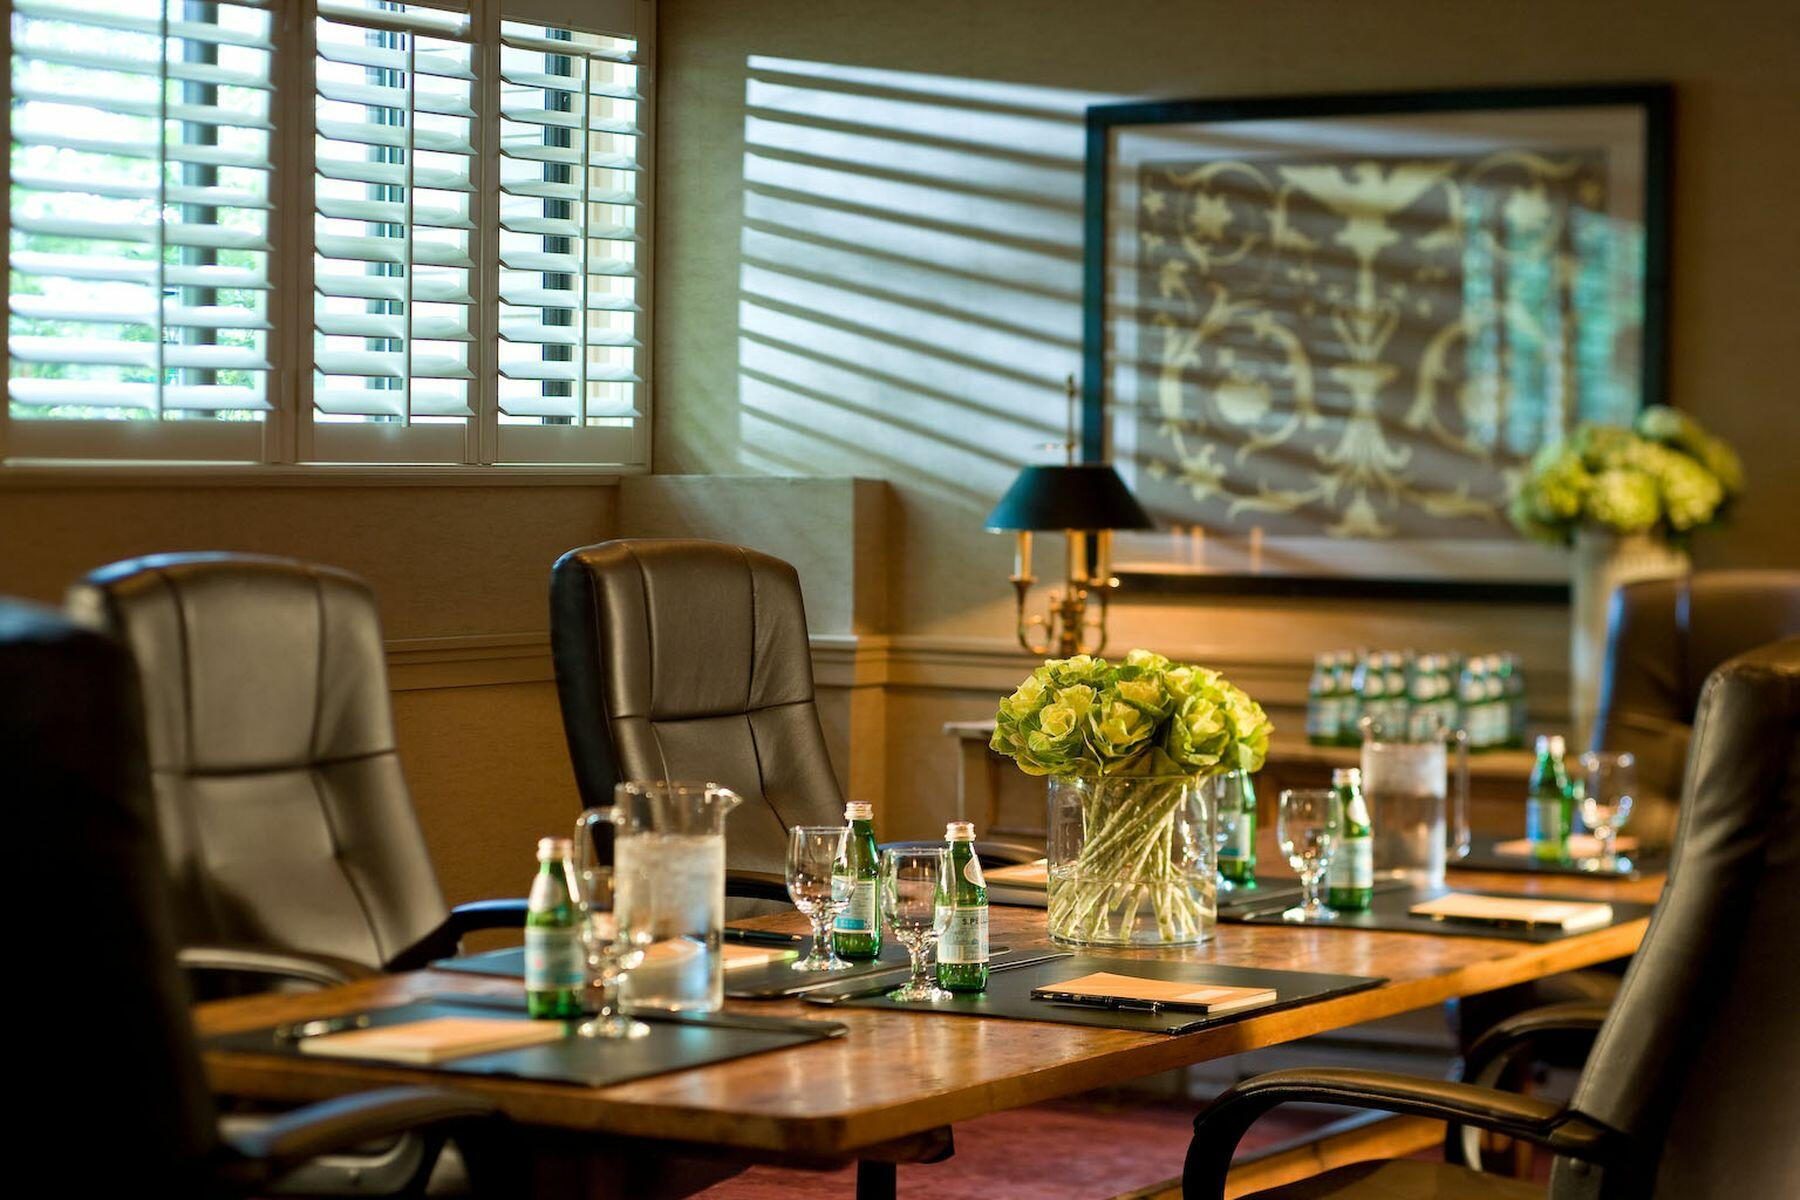 Small, well-lit conference room with long table.